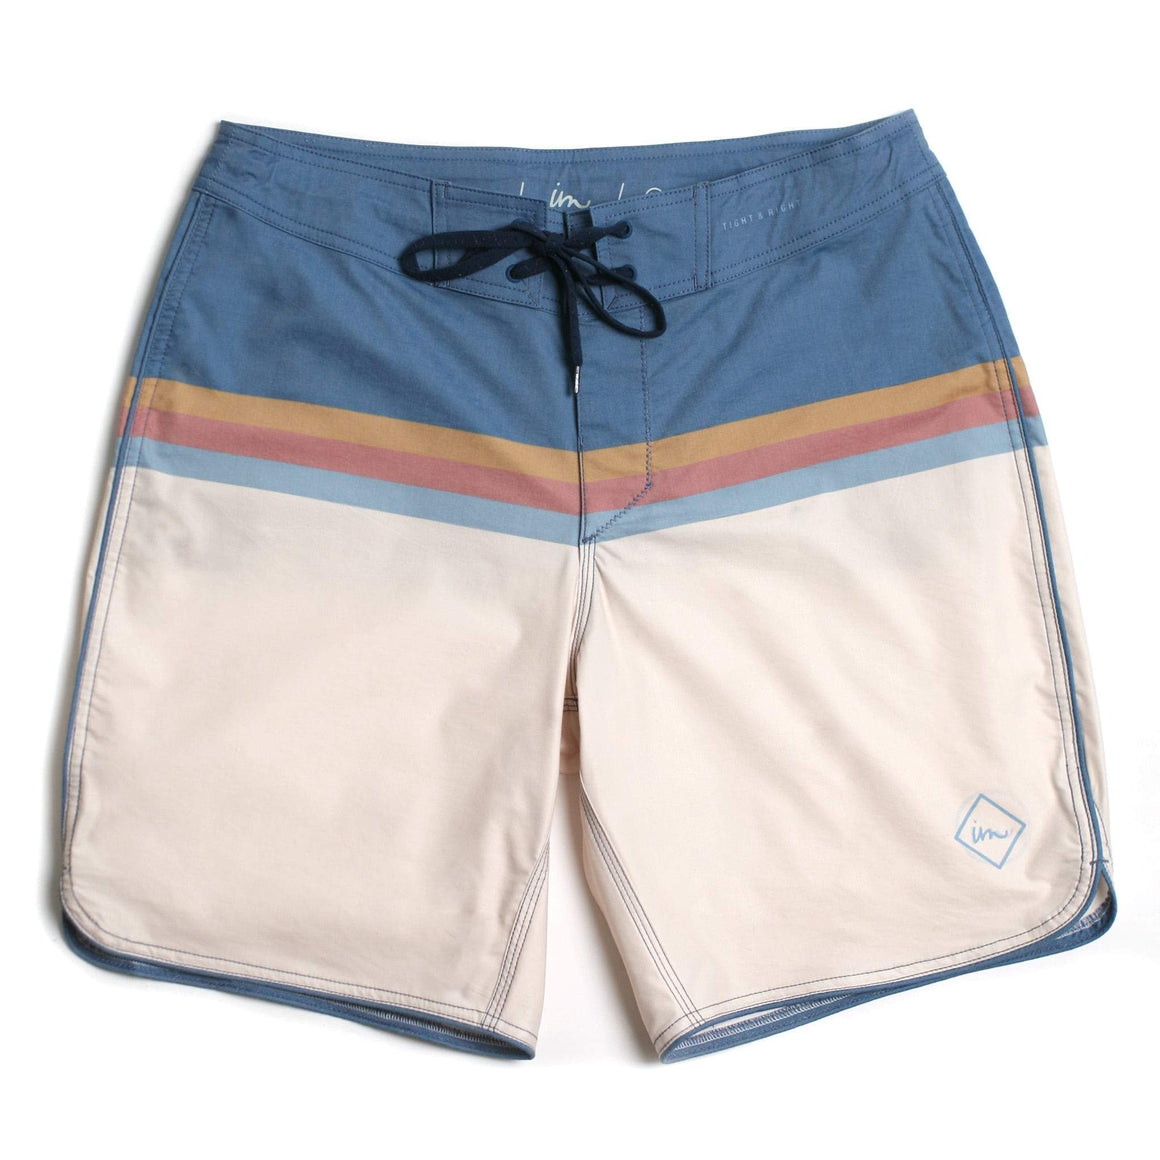 Imperial Motion Decade Boardshort - Indigo